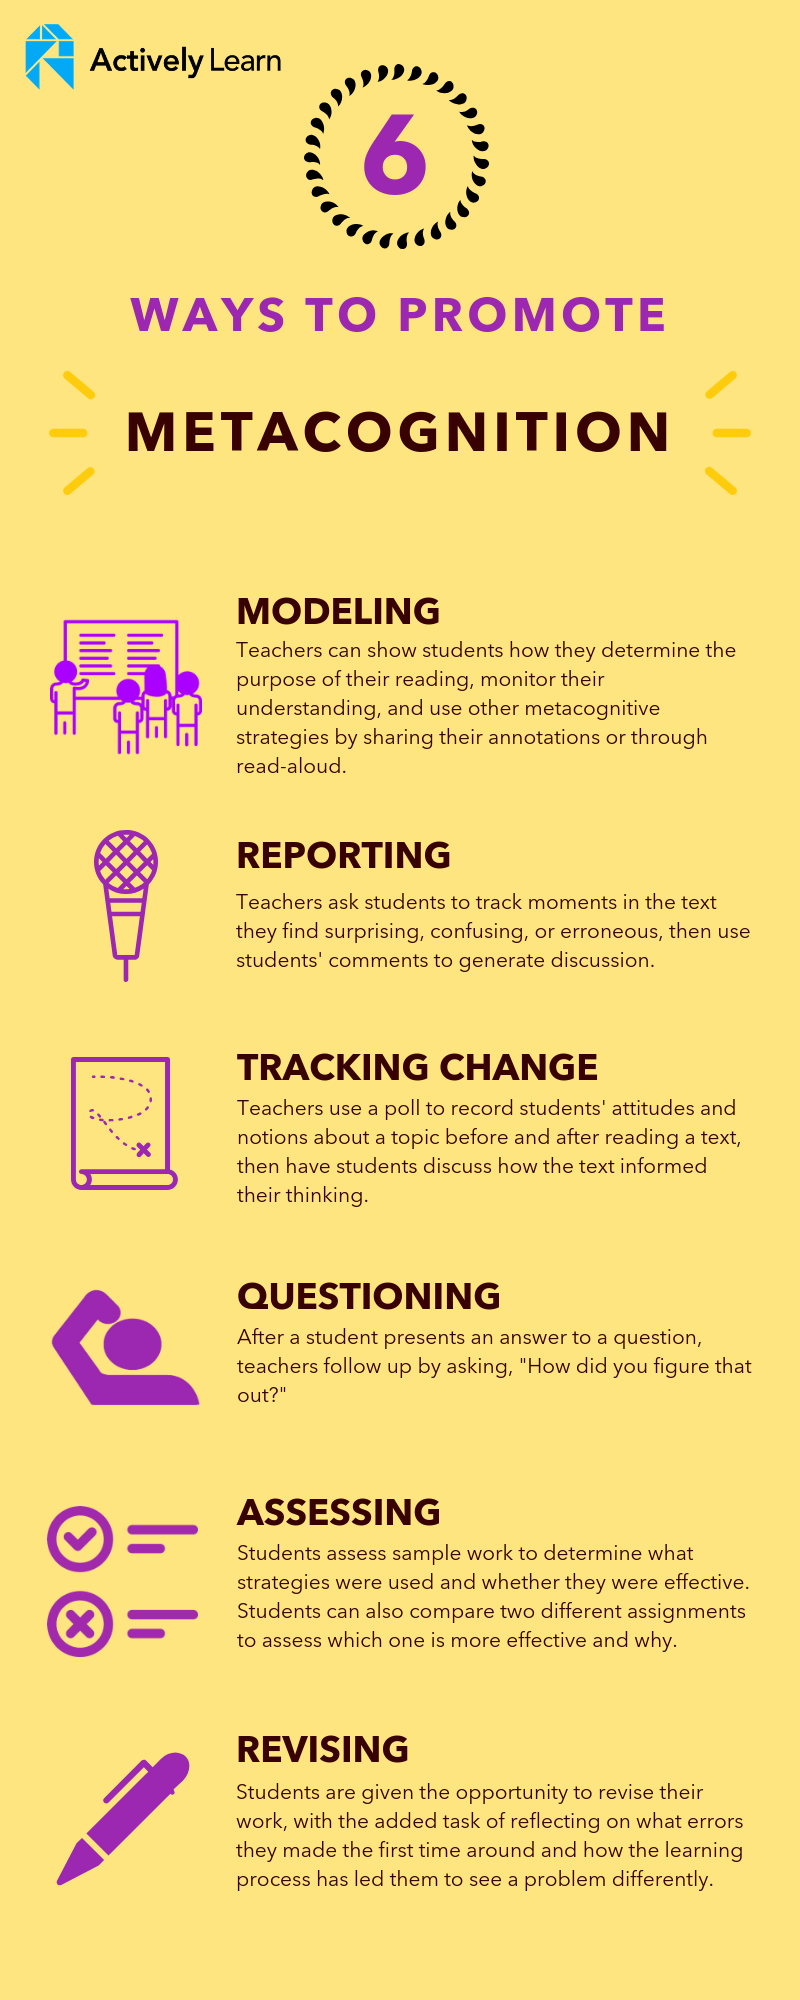 6 ways to promote metacognition